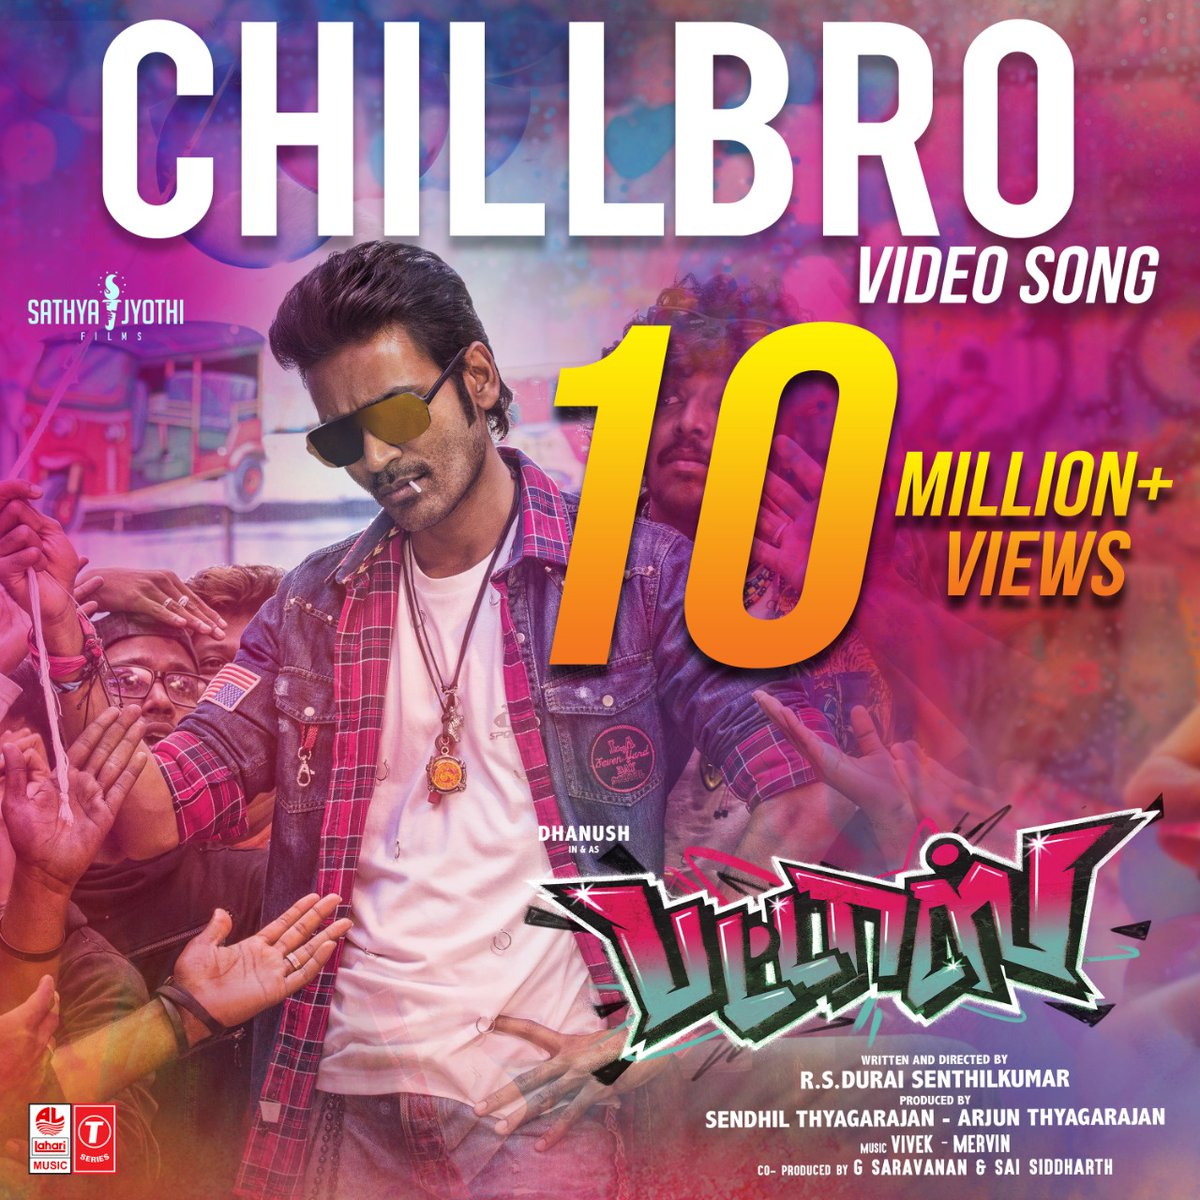 10 Million Views for Chartbuster #ChillBro Video Song from #Pattas with @dhanushkraja 's amazing dance moves  💥😍🤘  ▶️   @durairsk @actress_Sneha @Mehreenpirzada @iamviveksiva @MervinJSolomon @omdop @SathyaJyothi_  @LahariMusic